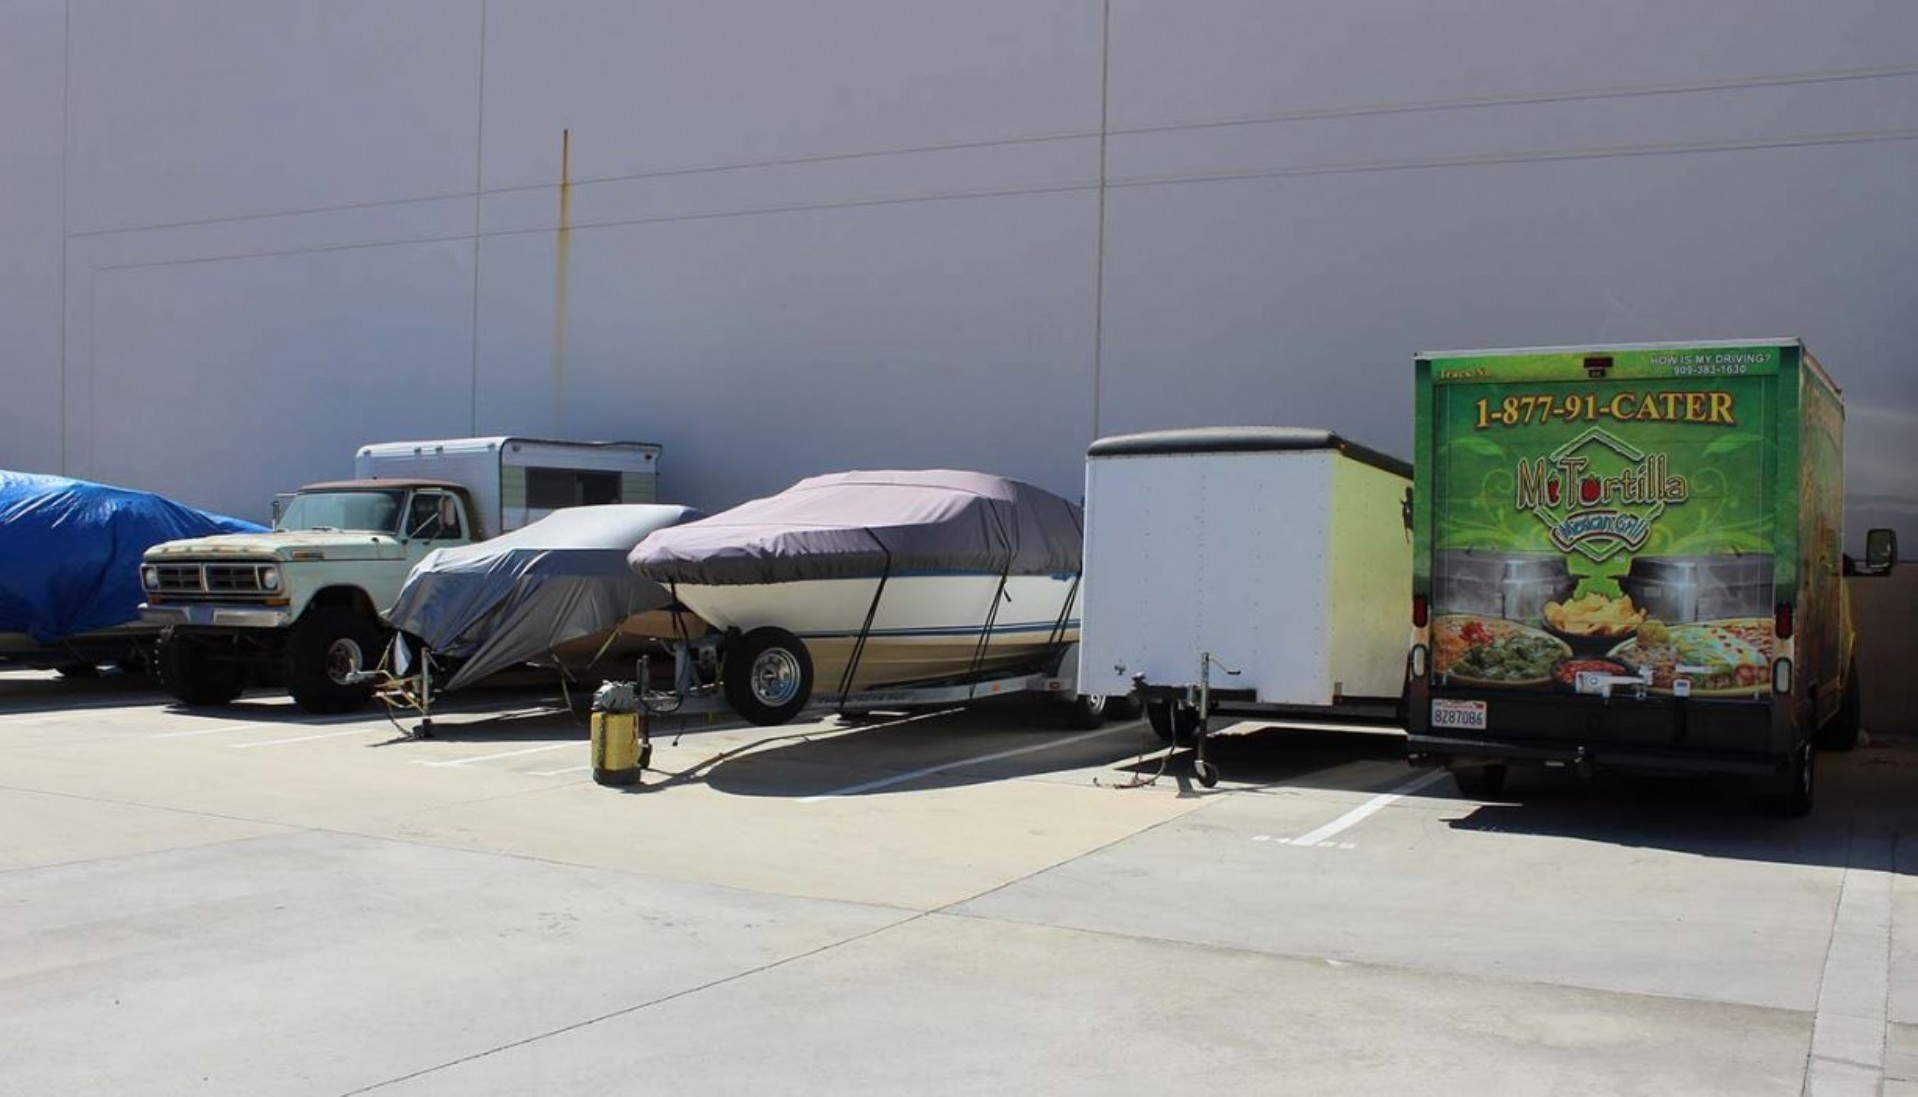 Trucks and trailers parked in vehicle storage spaces